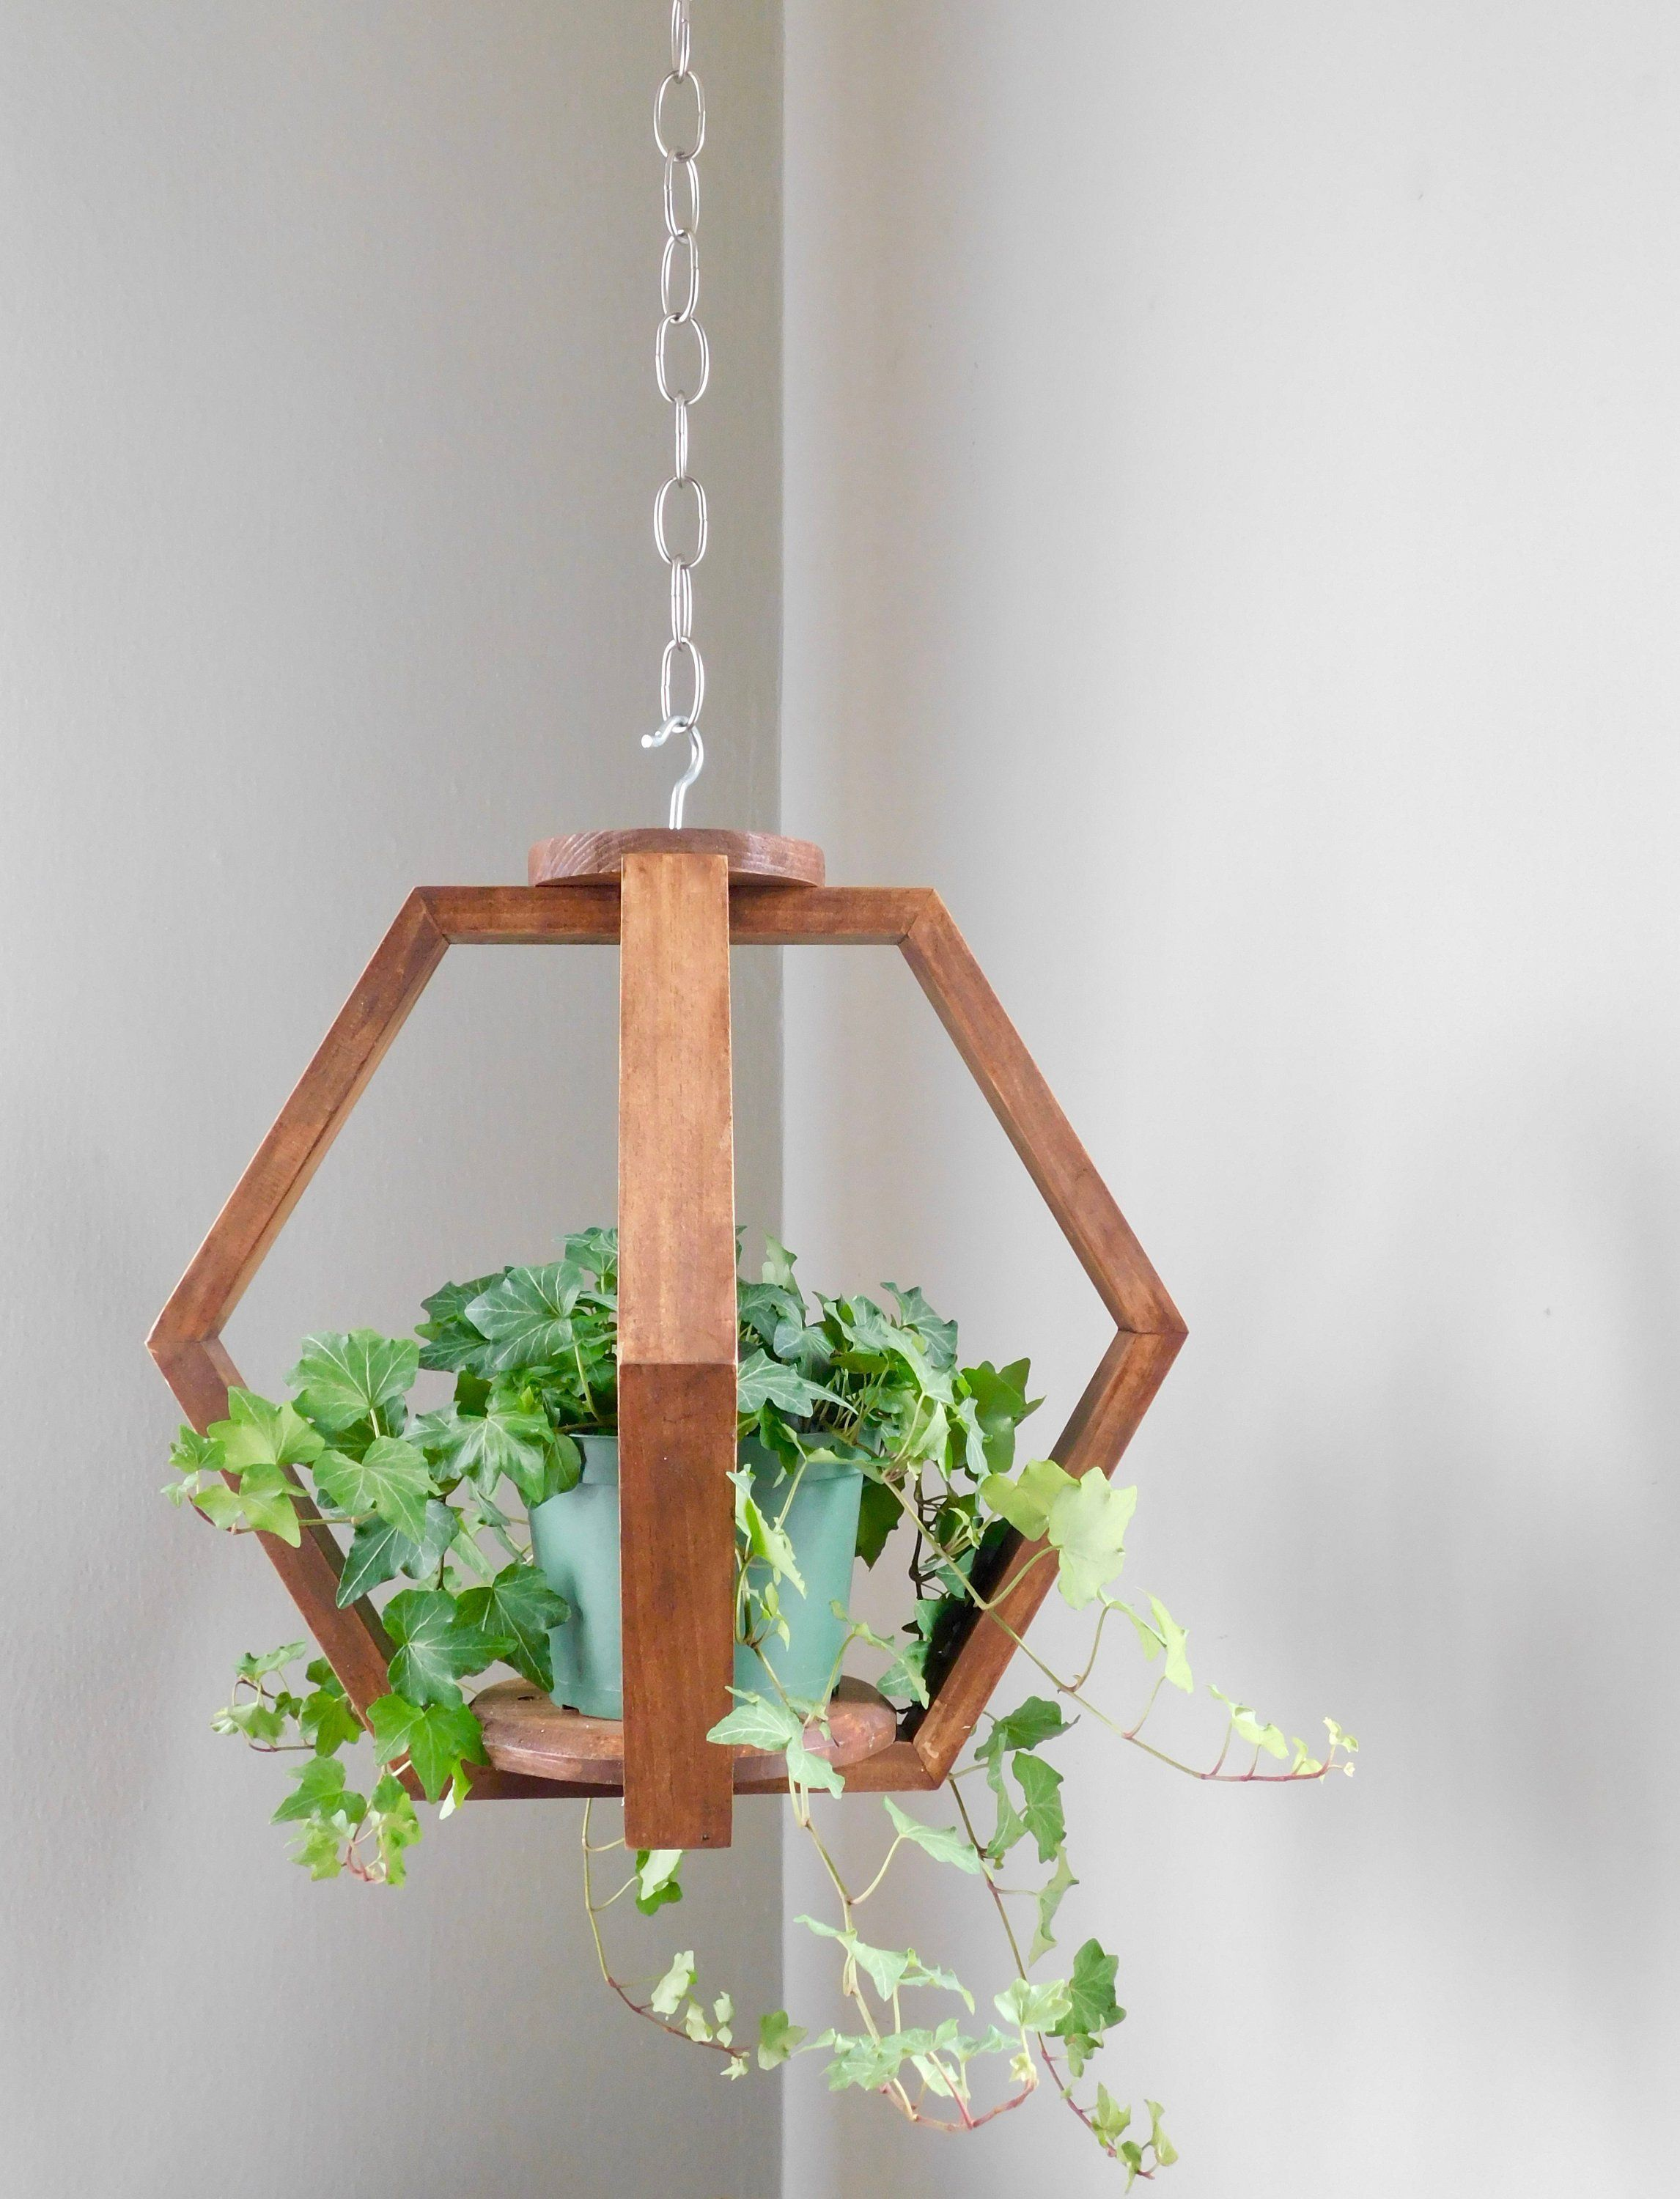 Wooden Plant Hanger Plant Holder Plant Hanging Ceiling Plant Hanging By Newprojectdesigns On Etsy Plant Decor Plant Hanger Ceiling Hangers